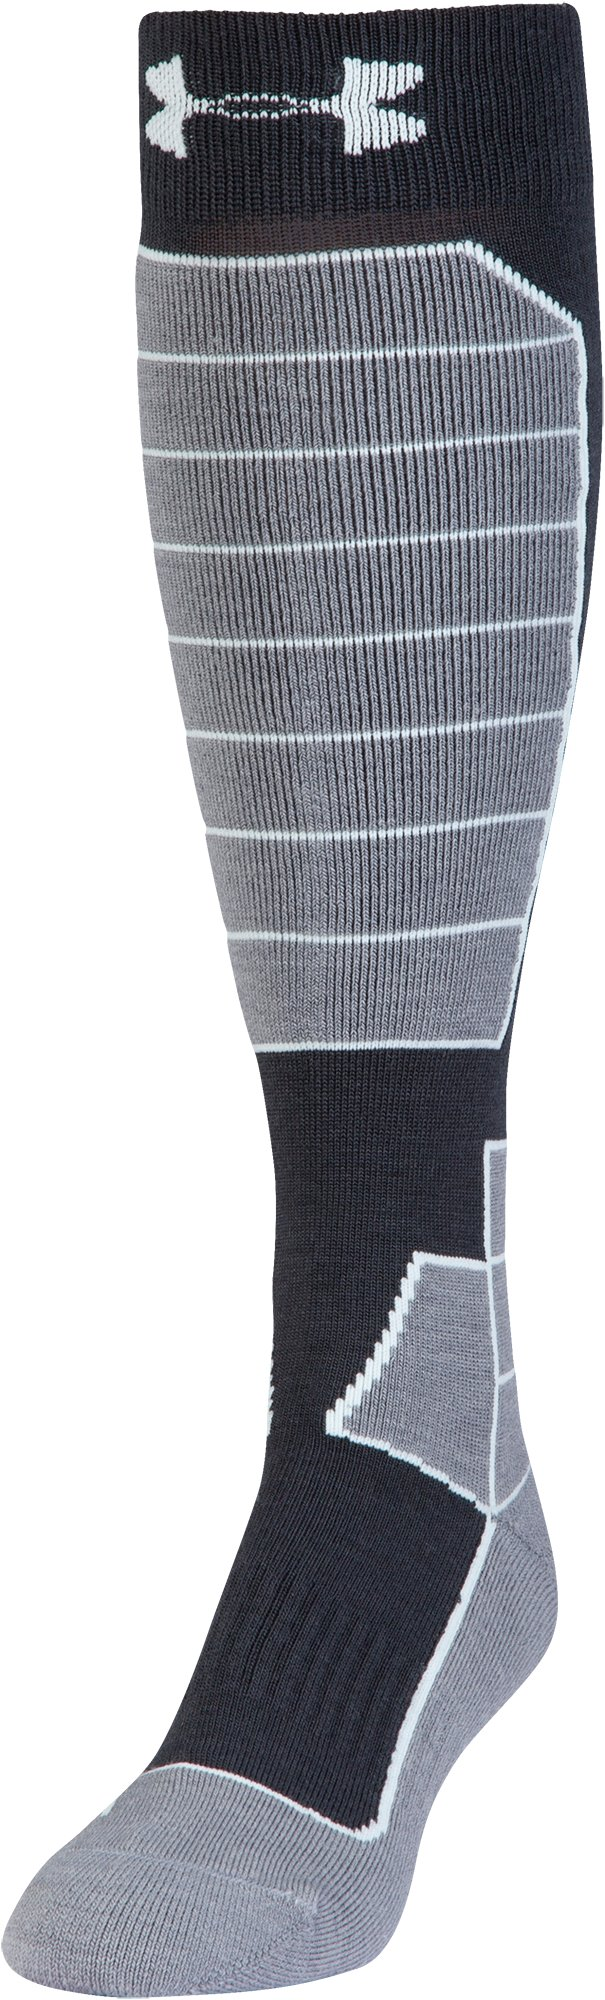 Women's UA Mountain Performance Over-The-Calf Socks, ANTHRACITE, undefined